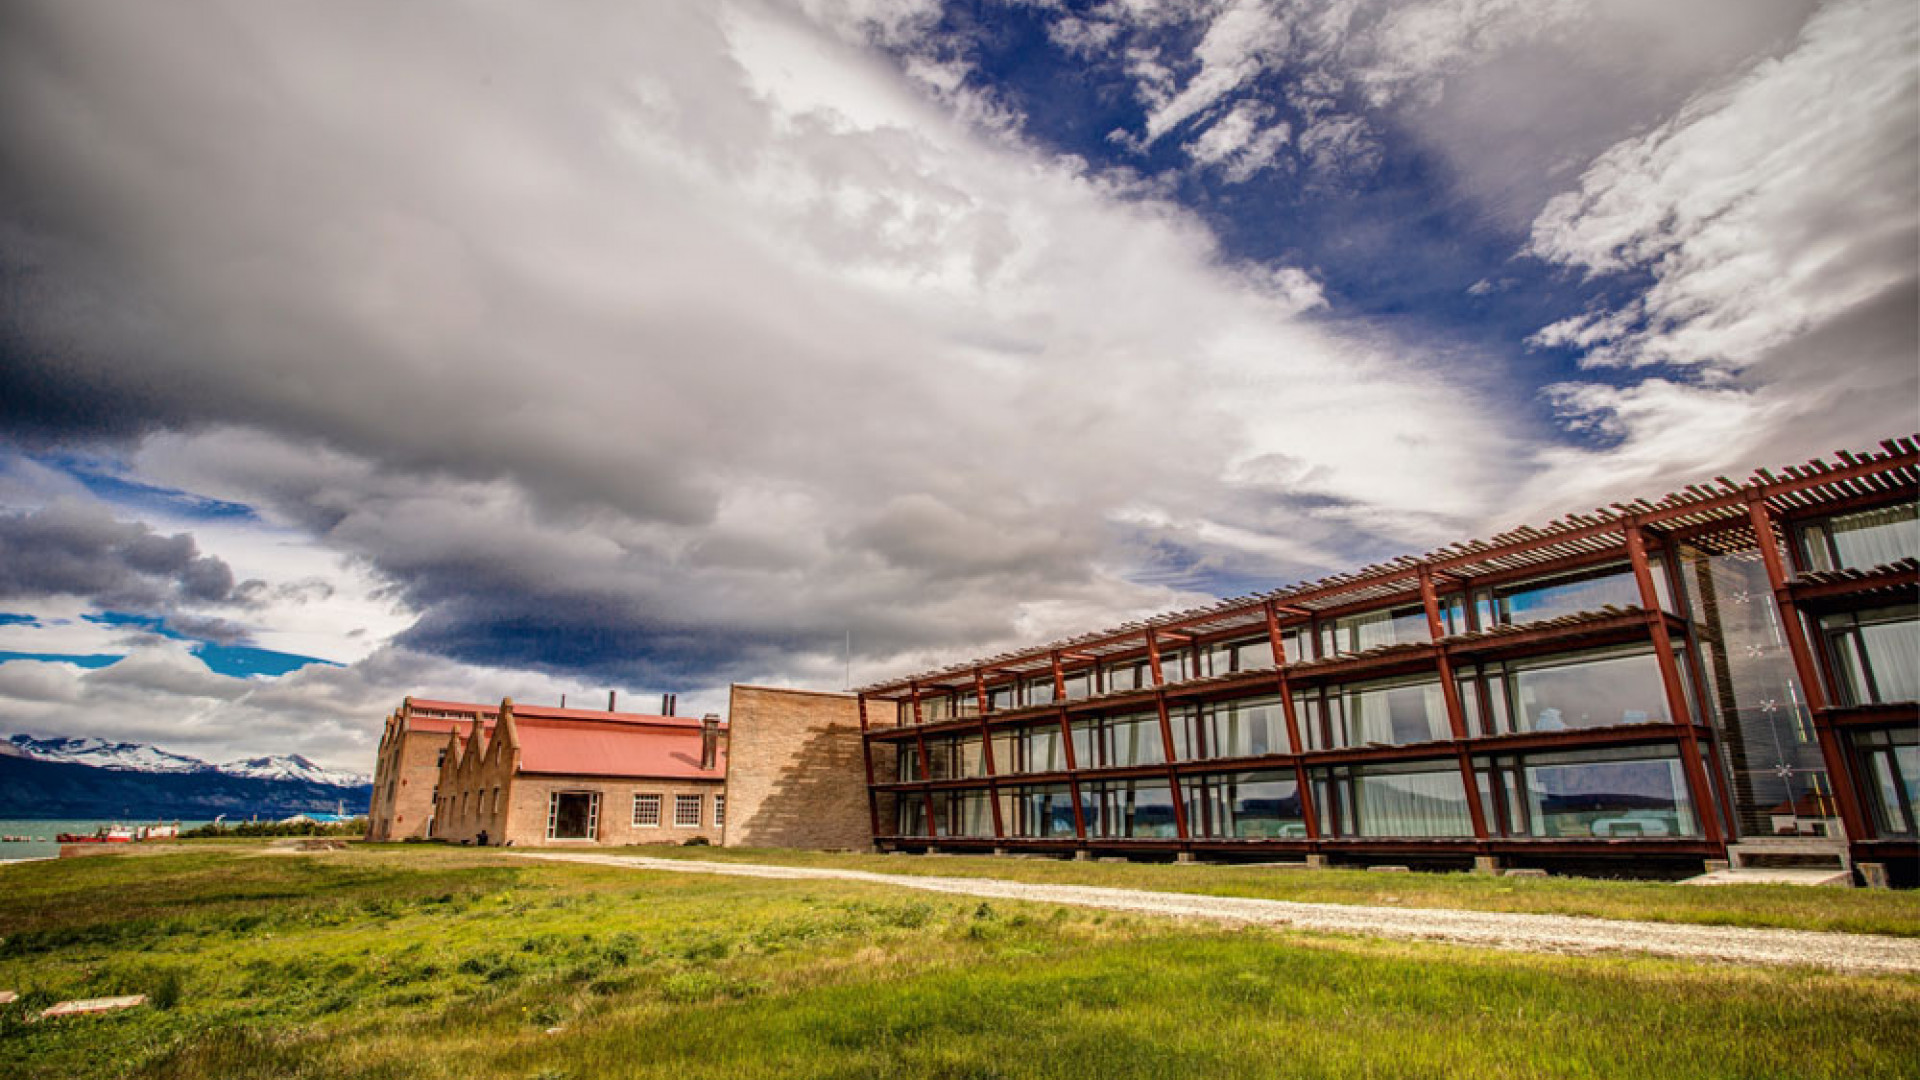 The Singular Hotel, near Puerto Natales airport, Patagonia